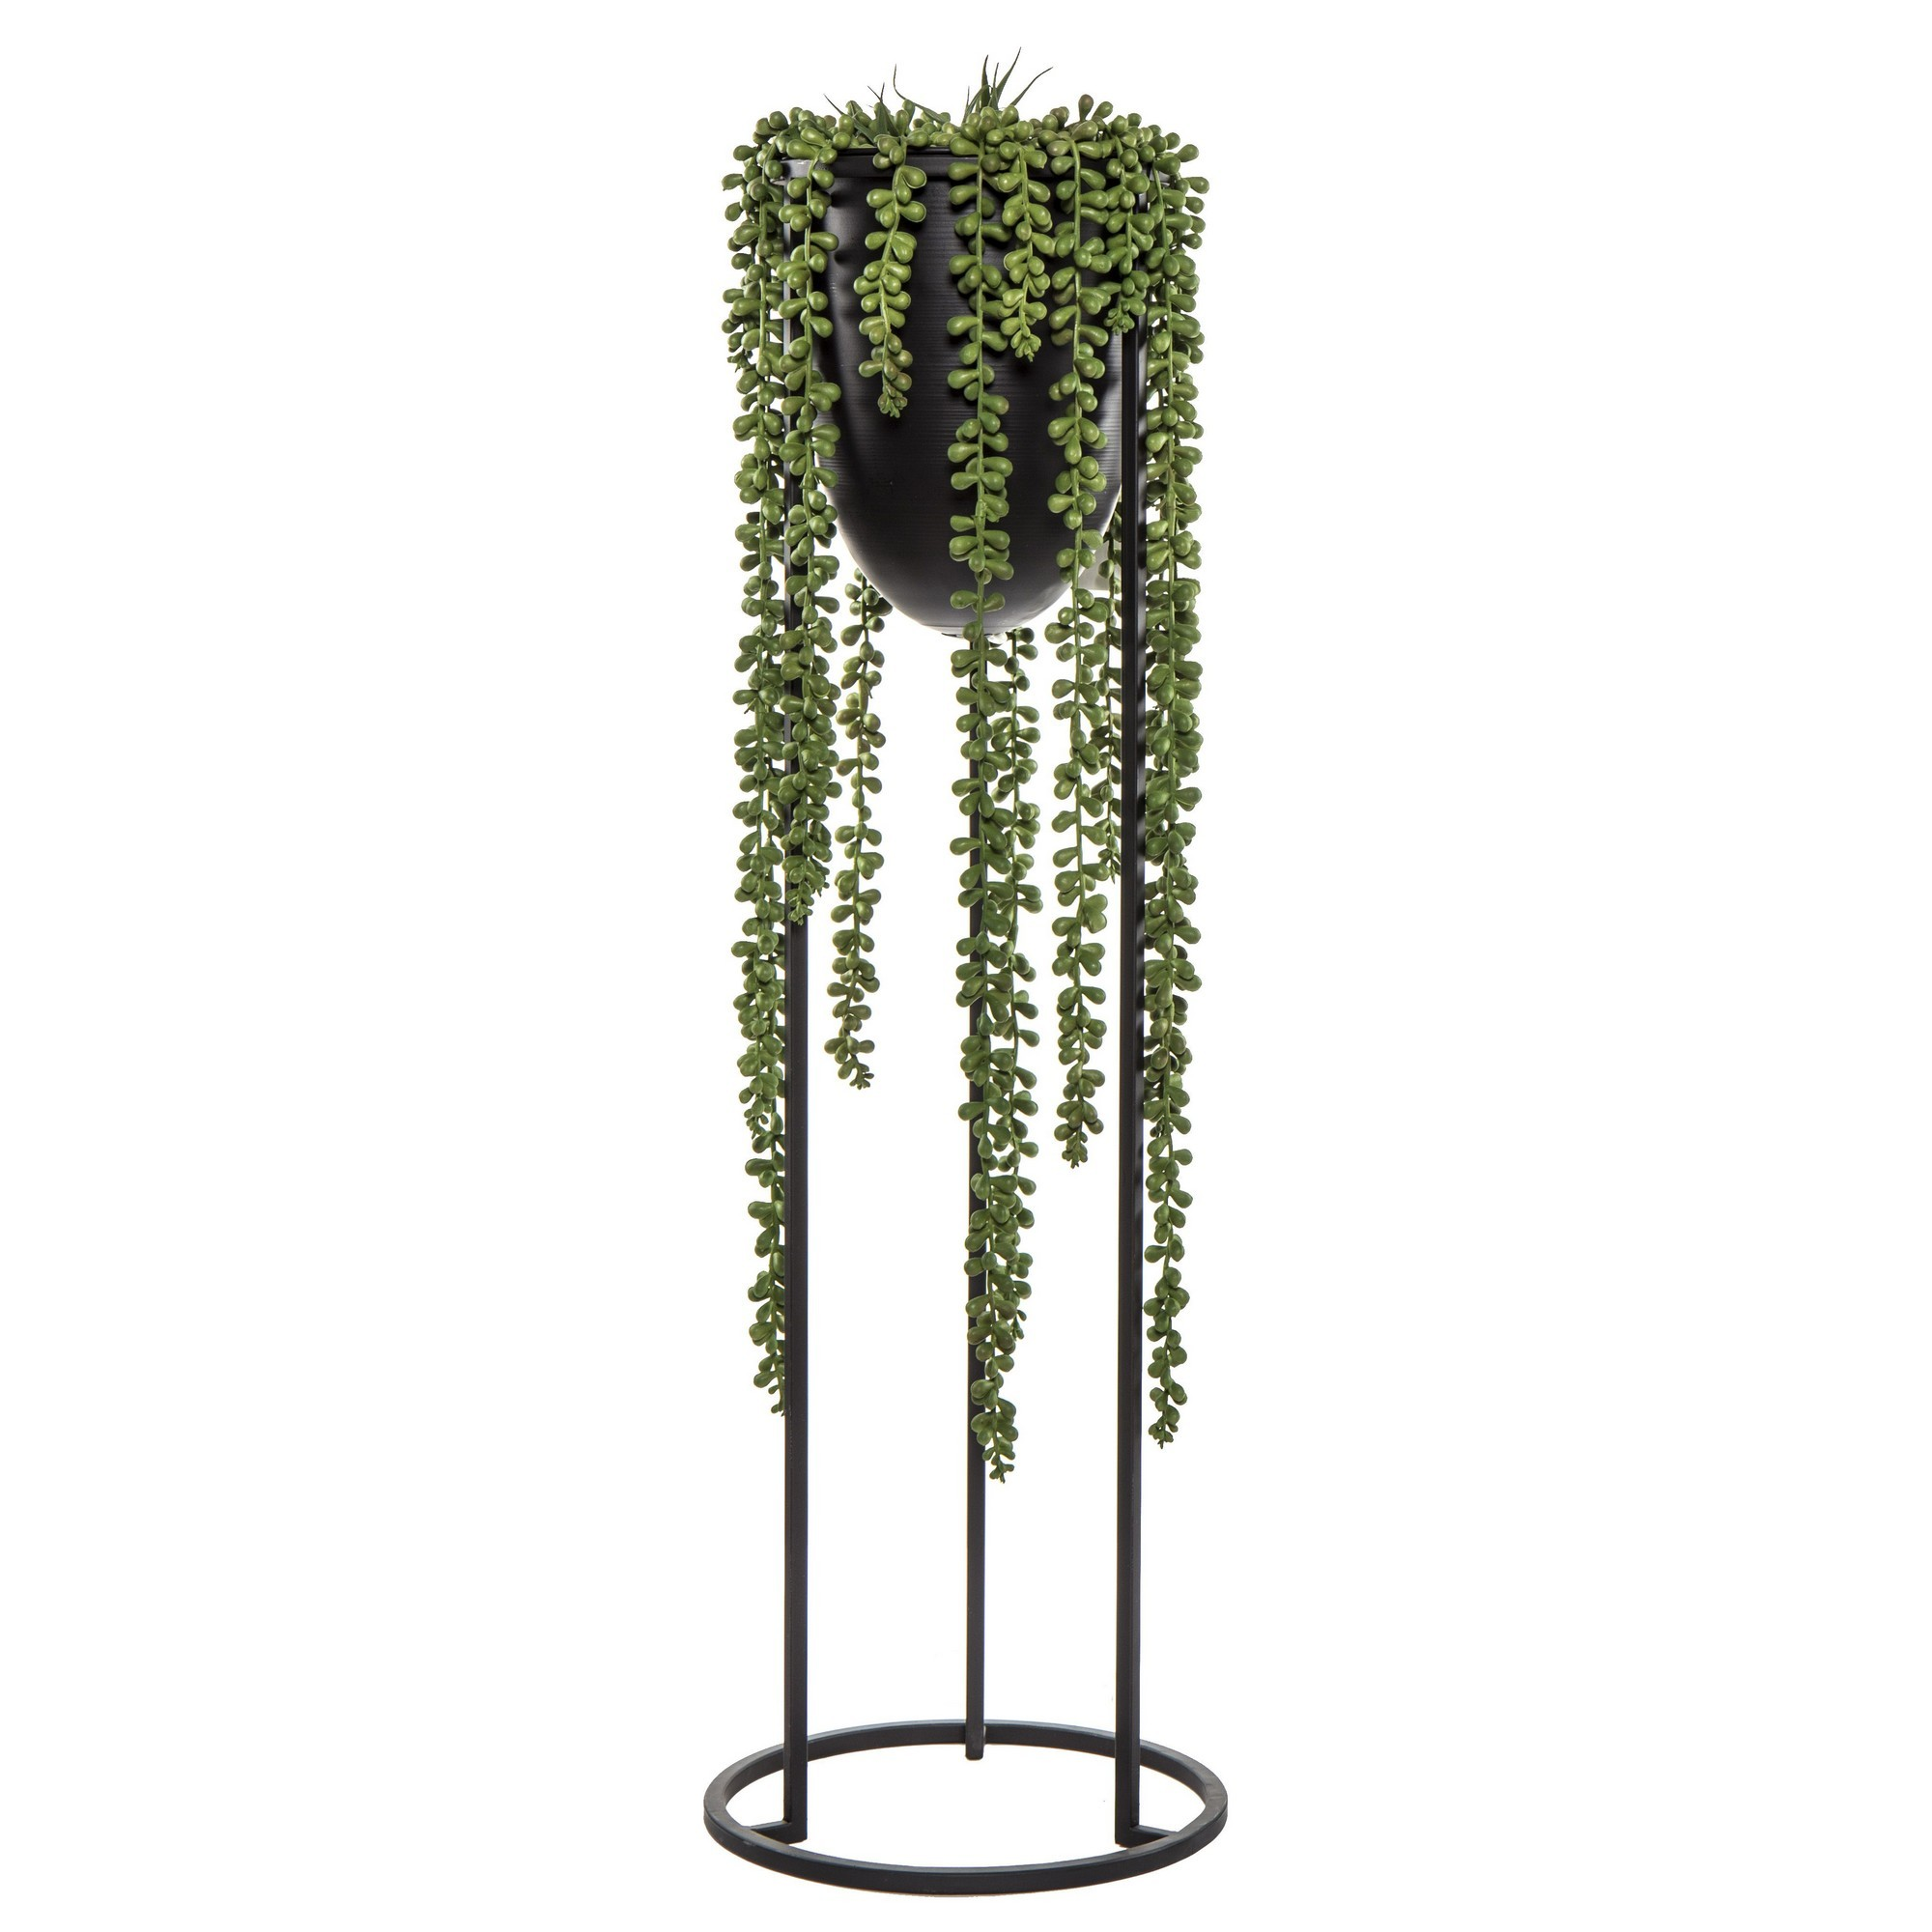 Artificial Hanging String Of Pearls in Marcus Pot Stand, 74cm